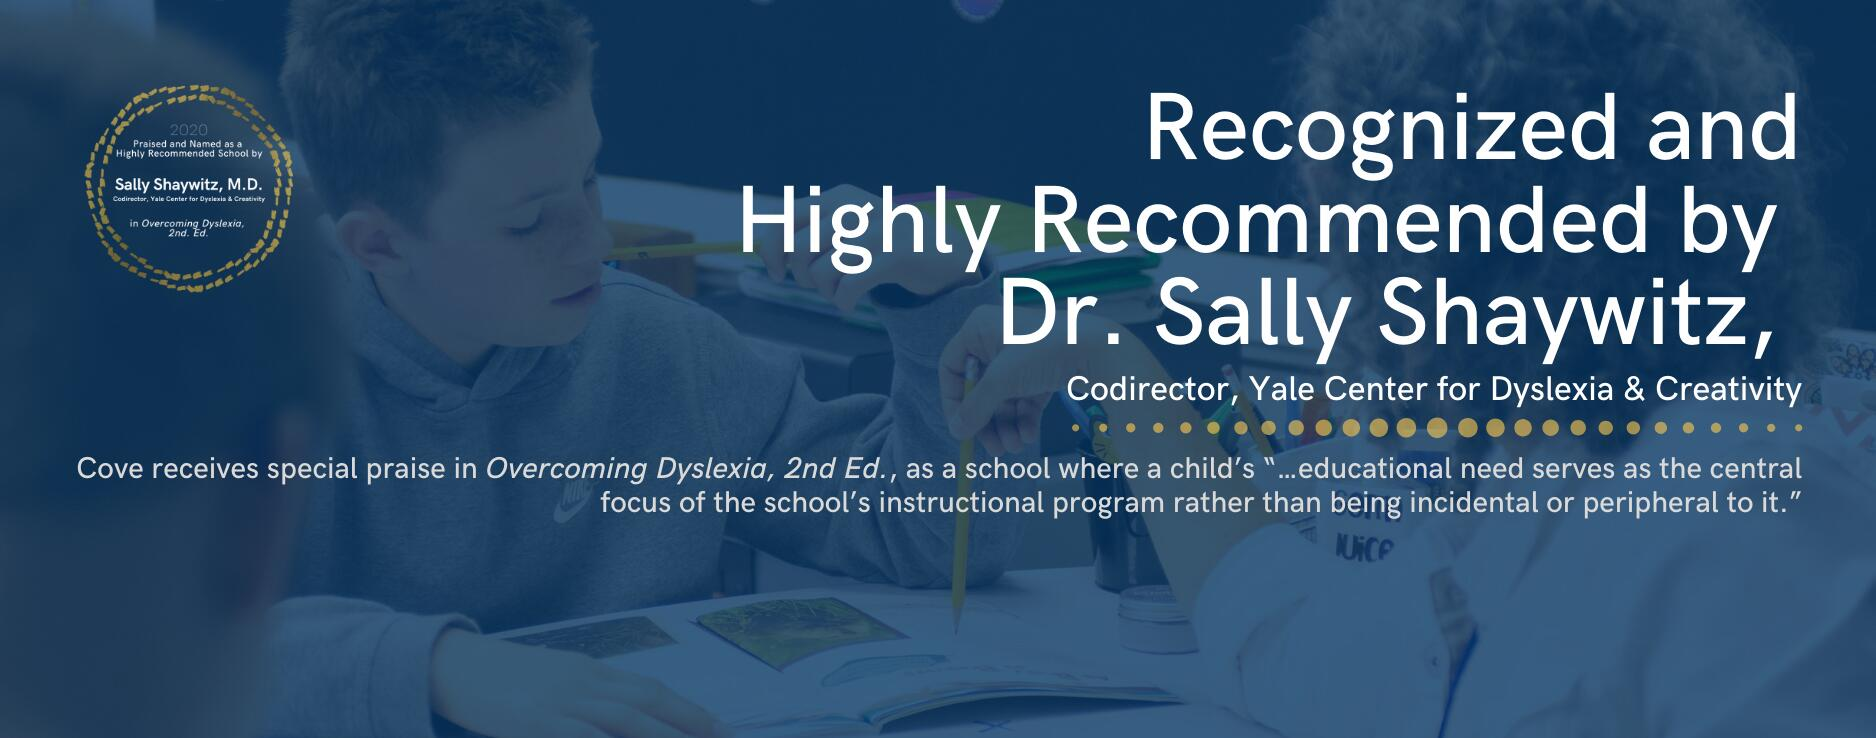 Cove receives special praise in Overcoming Dyslexia, 2nd Ed